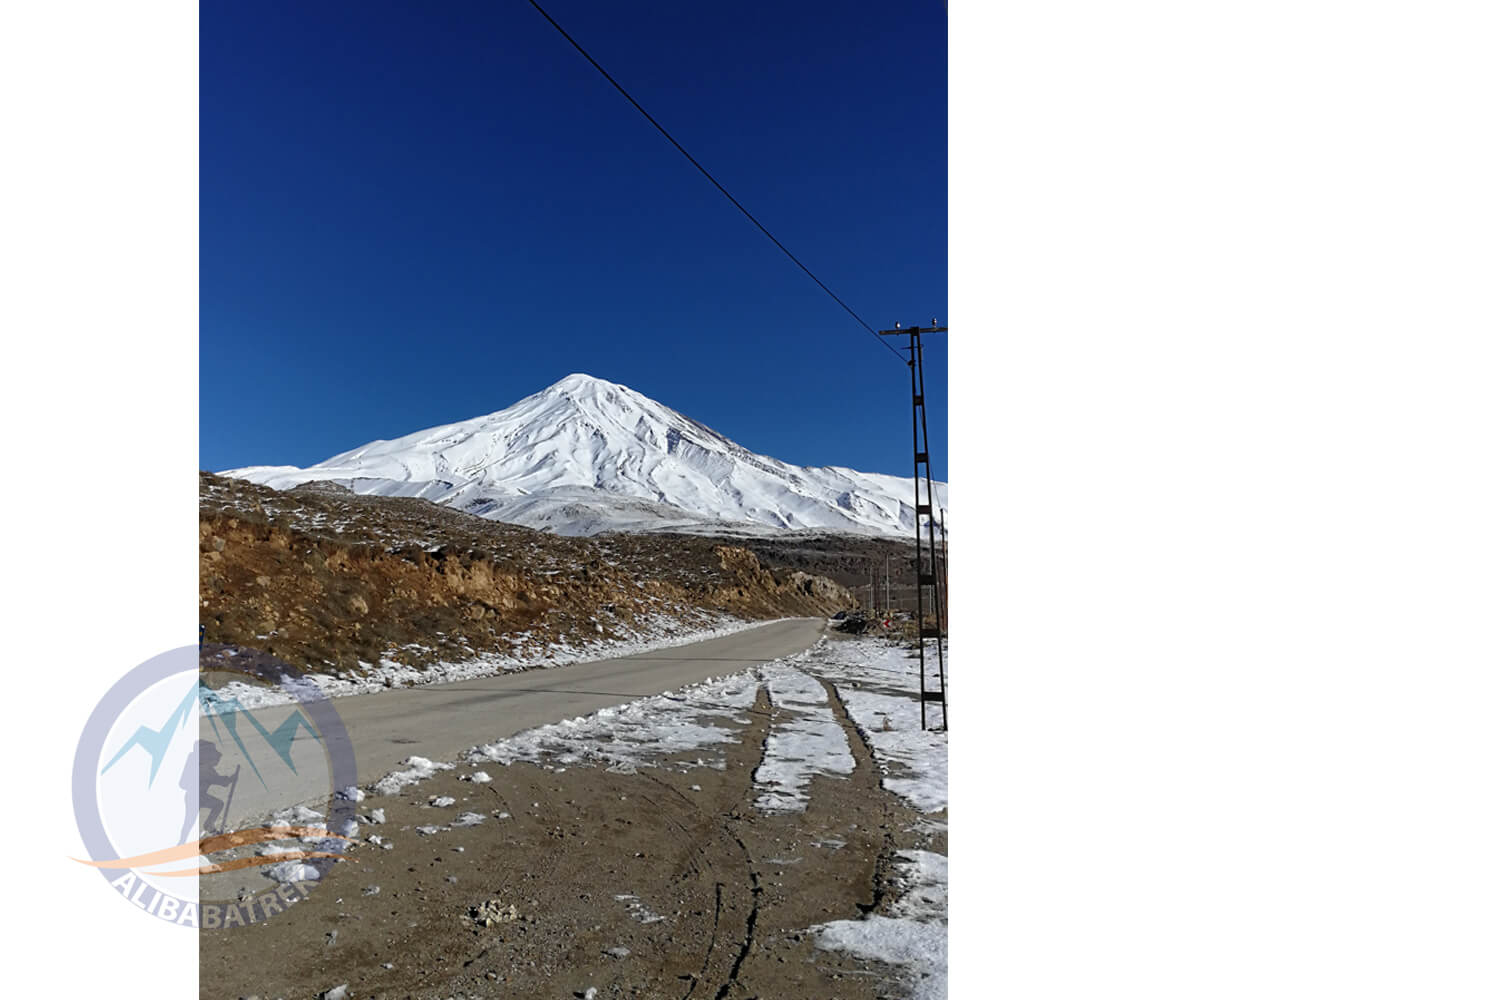 Alibabatrek damavand and tochal trekking tour iran trekking tour in tehran